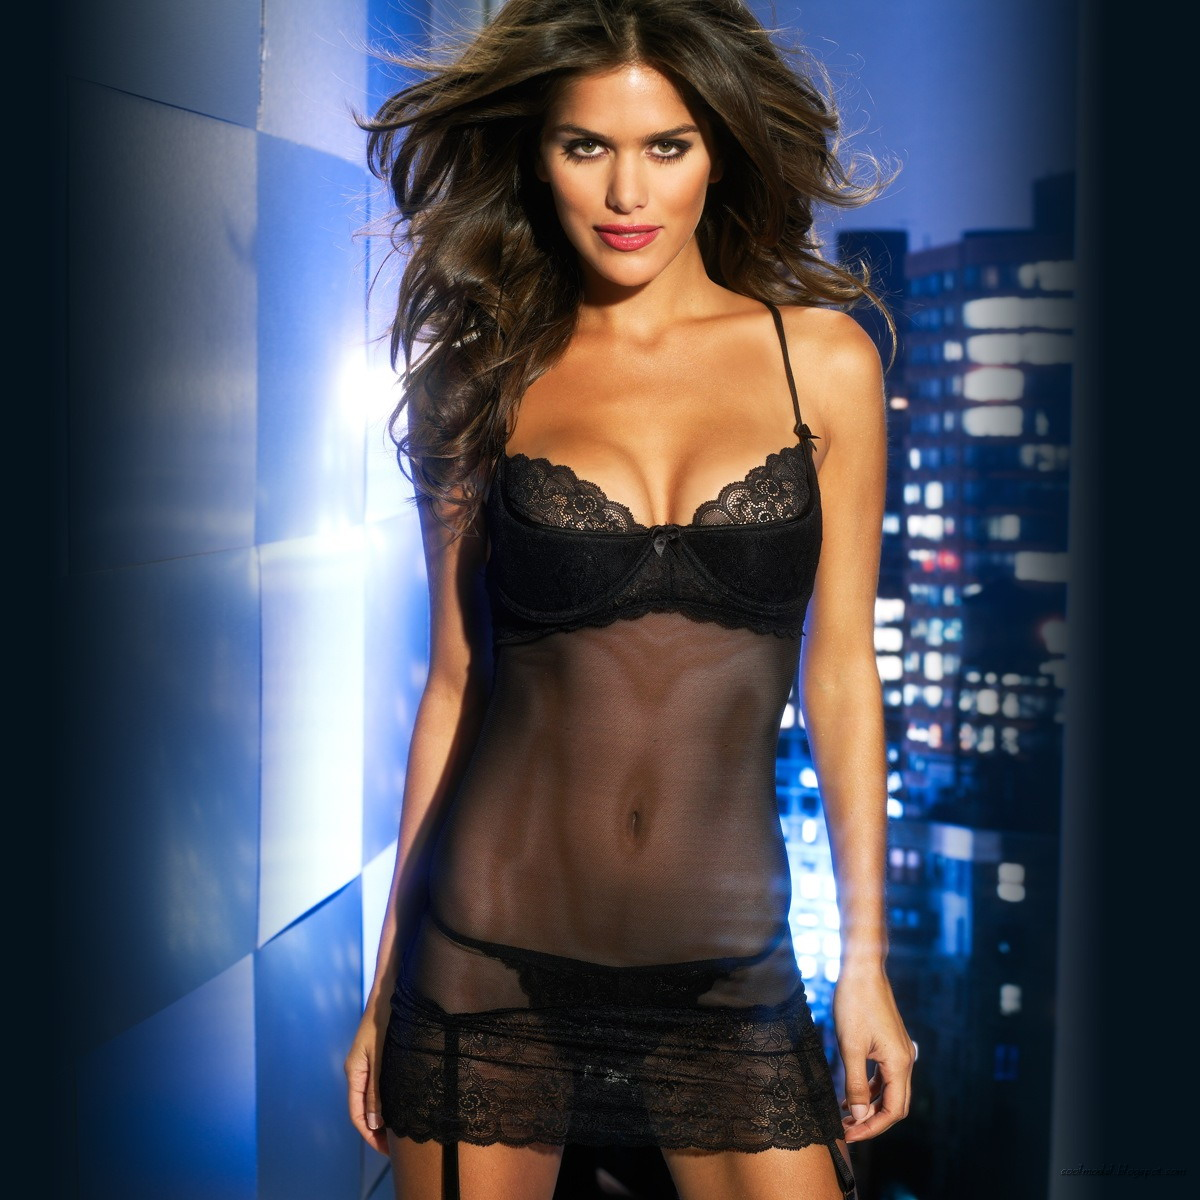 Rather Anahi gonzales hot remarkable, rather